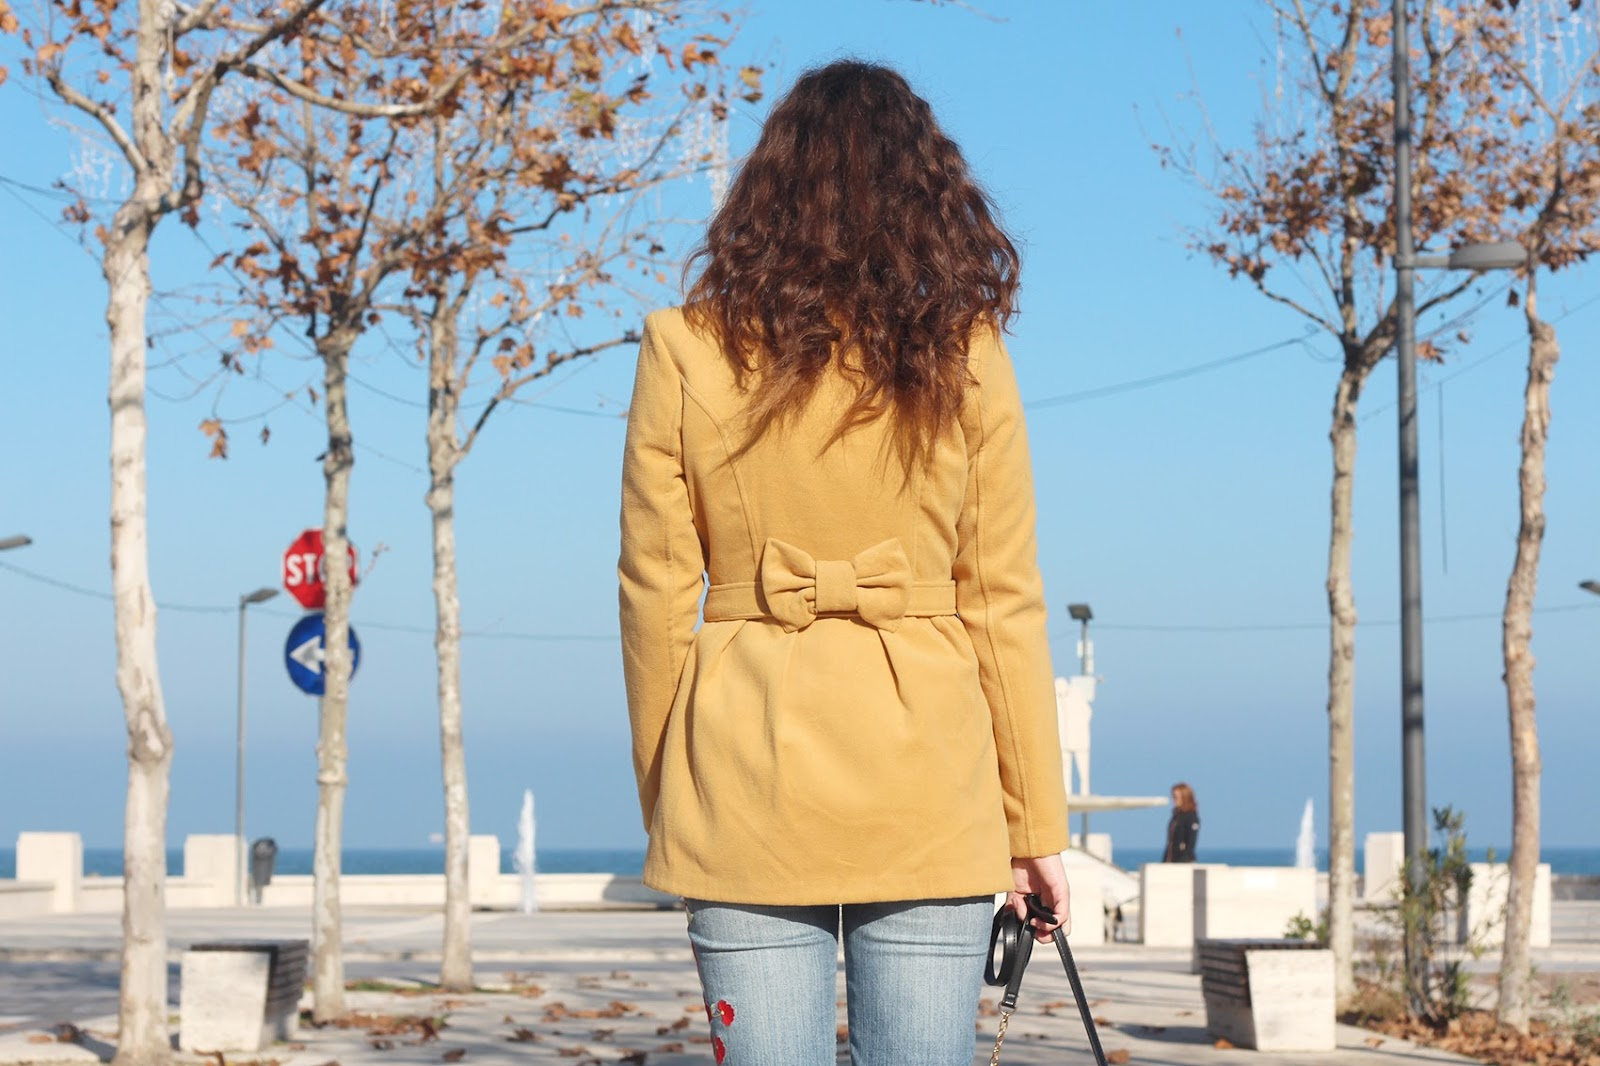 fashion blogger italy italia trend style vogue outfit ootd look flave pants denim jeans pantaloni zampa janeston necklace collana camera bag accessorize borsa reflex mustard coat bow cappotto giallo fiocco